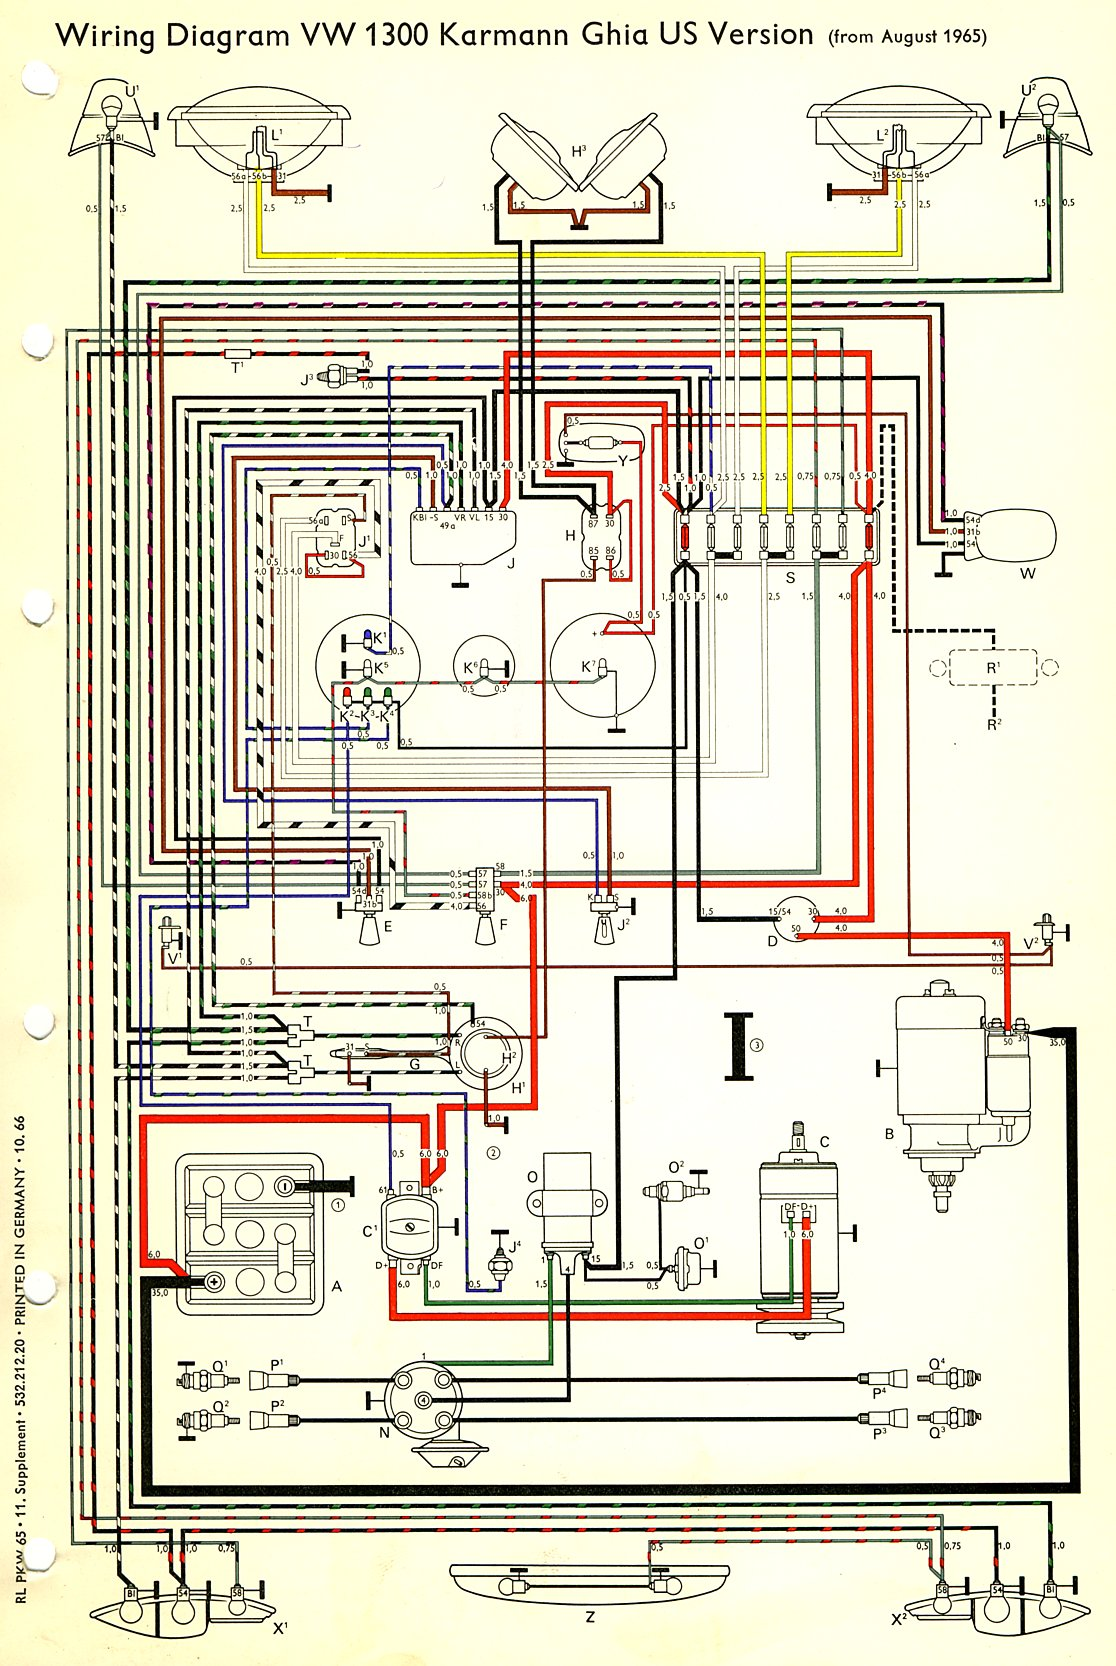 1973 Volkswagen Wiring Diagram Karmann Ghia For A House Symbols Thesamba Com Diagrams Rh Vw Fuse Panel